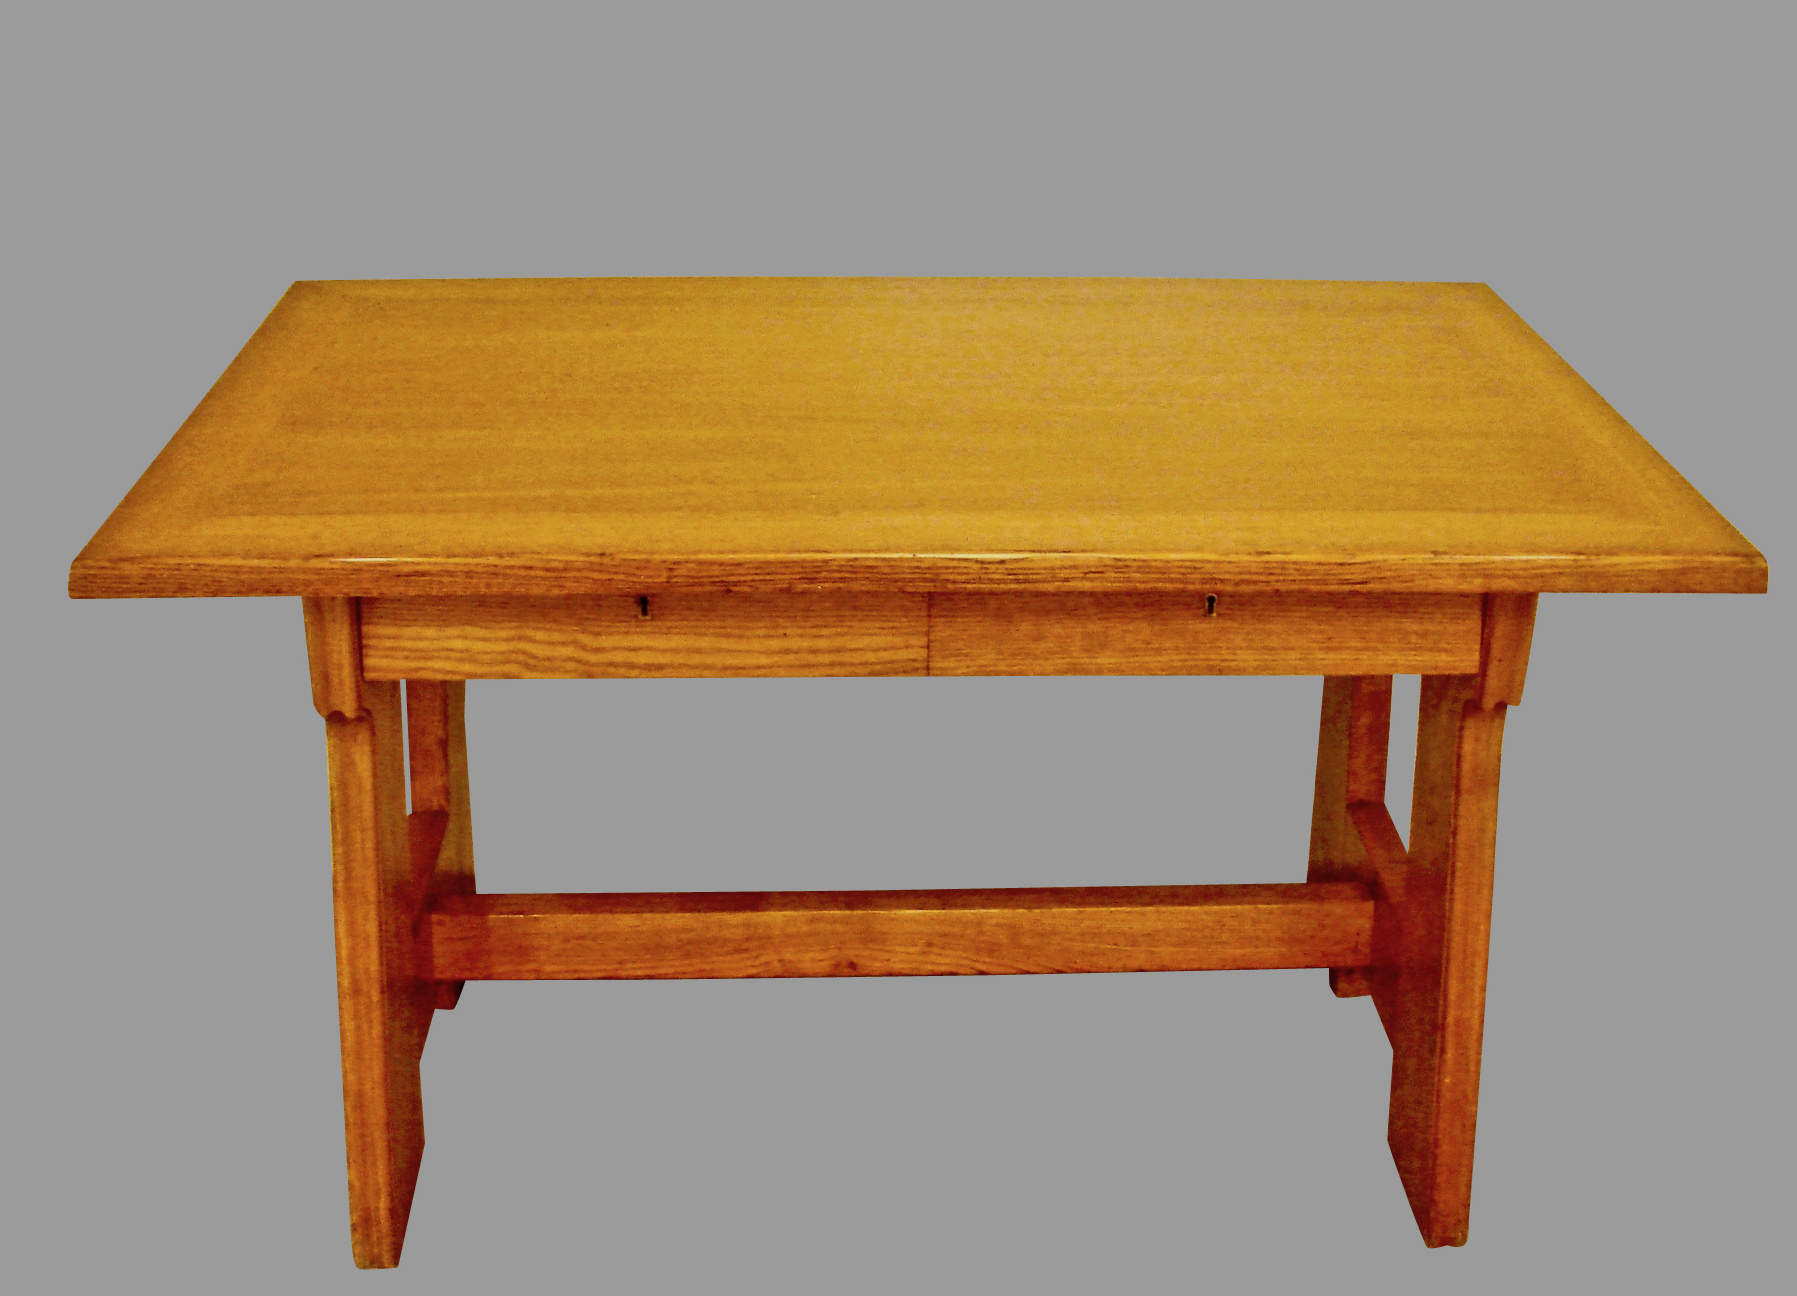 Continental Oak Arts & Crafts Table with 2 Drawers | DANIEL STEIN Antiques San Francisco CA